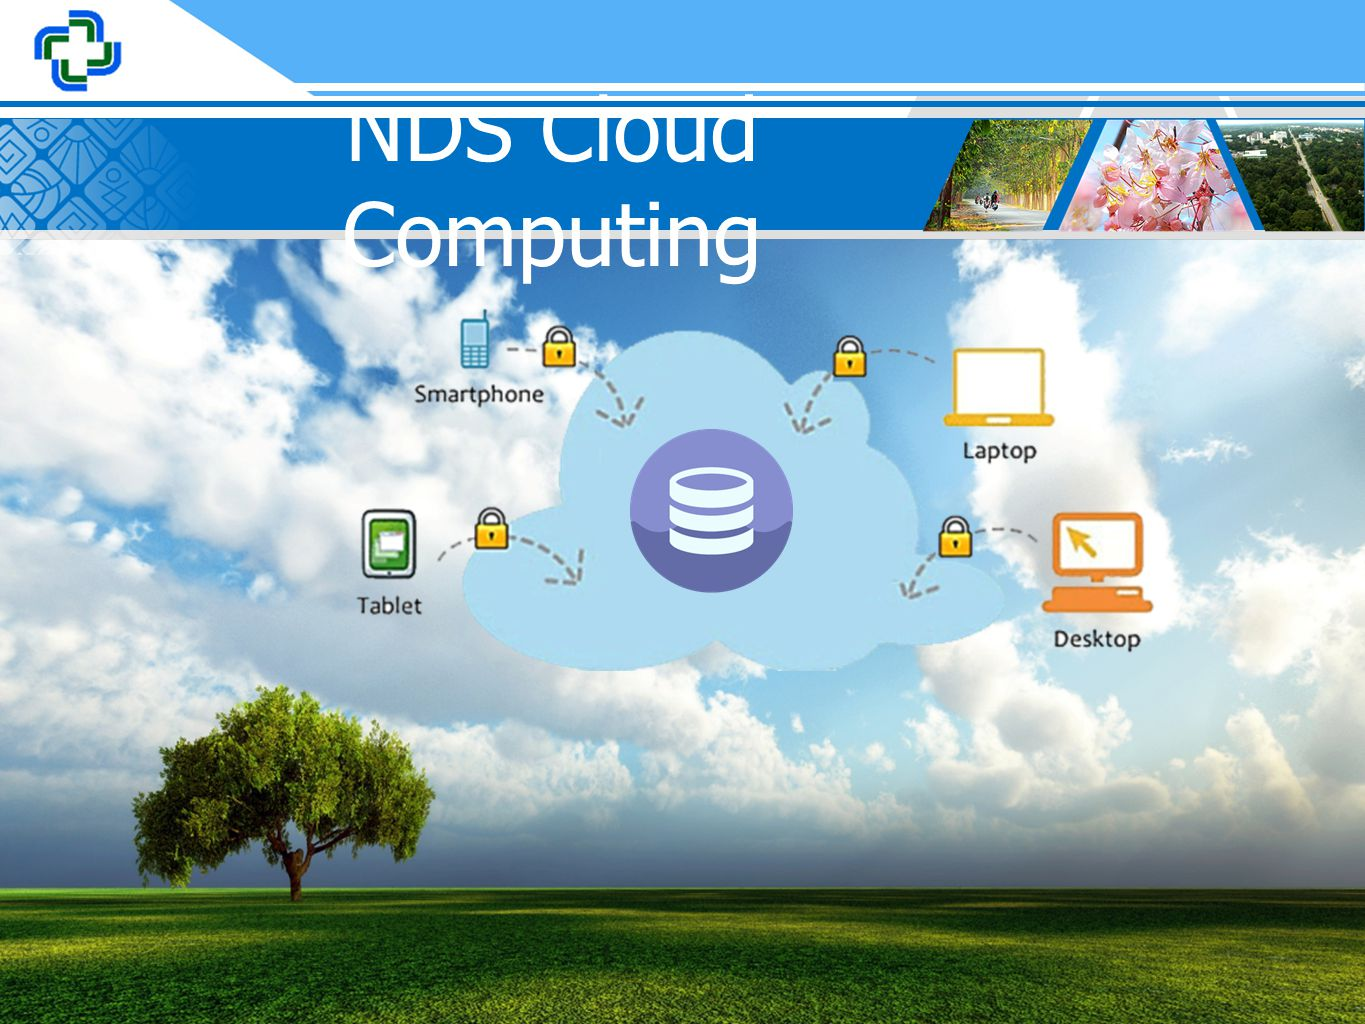 NDS Cloud Computing